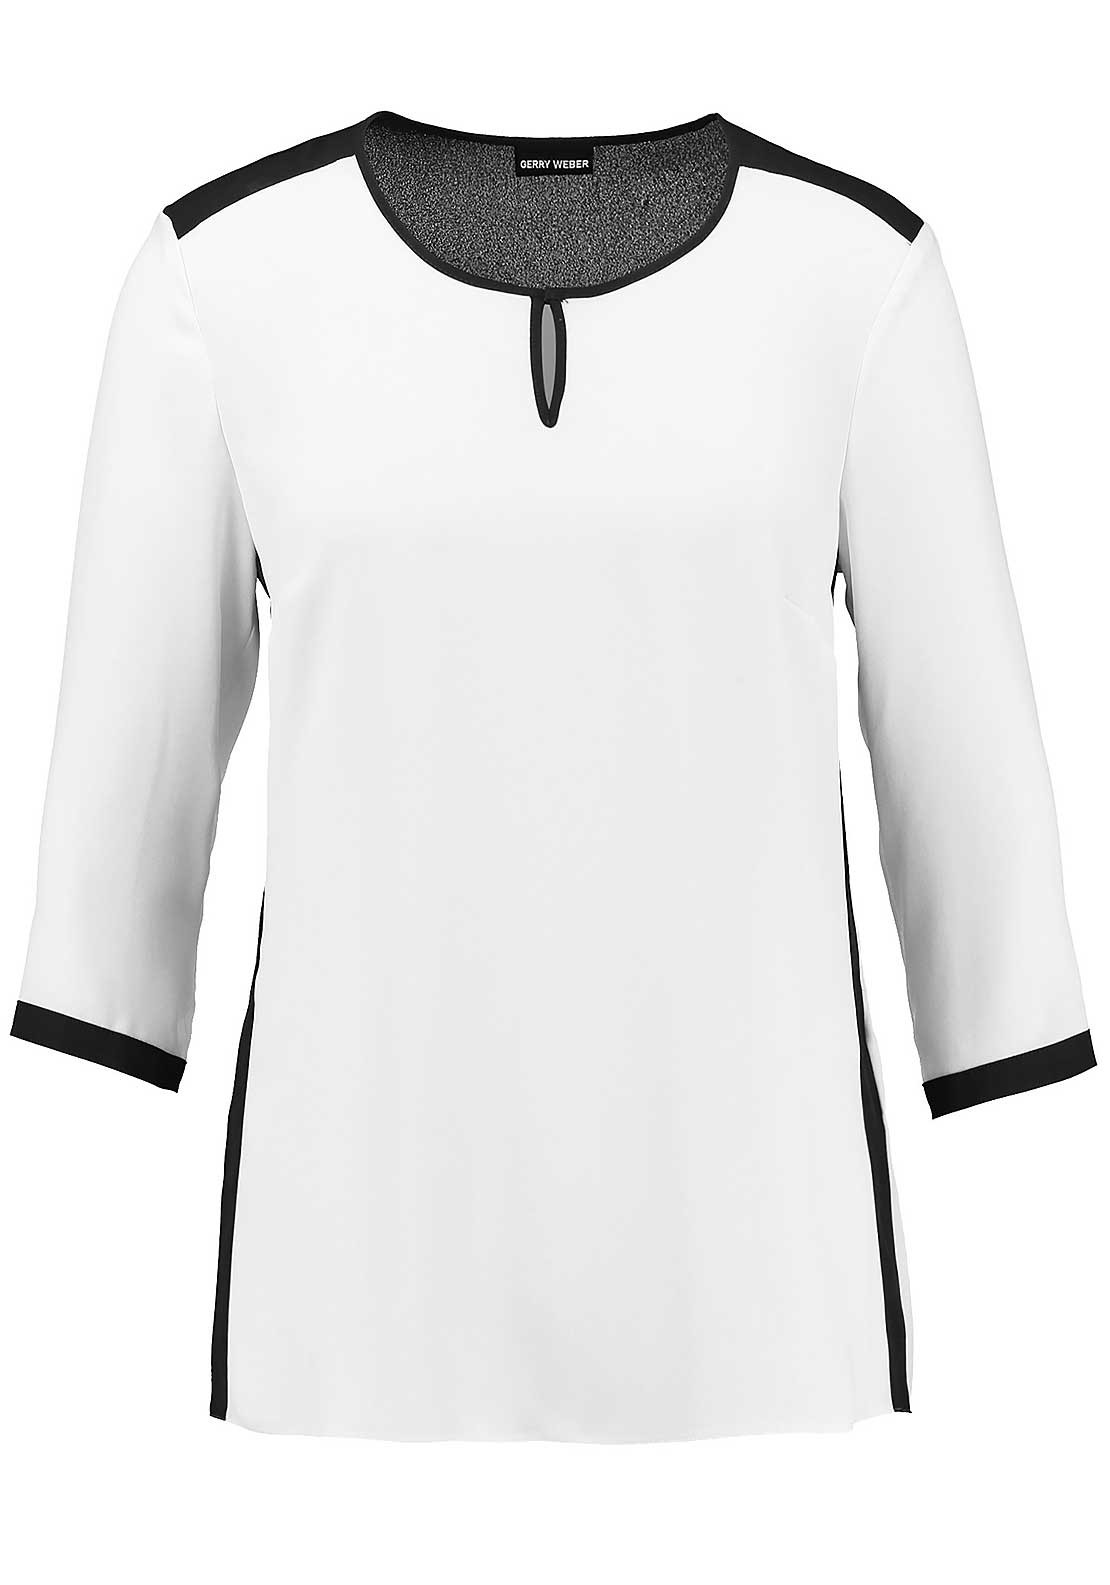 Gerry Weber Chiffon Three Quarter Length Sleeve Panel Top, White